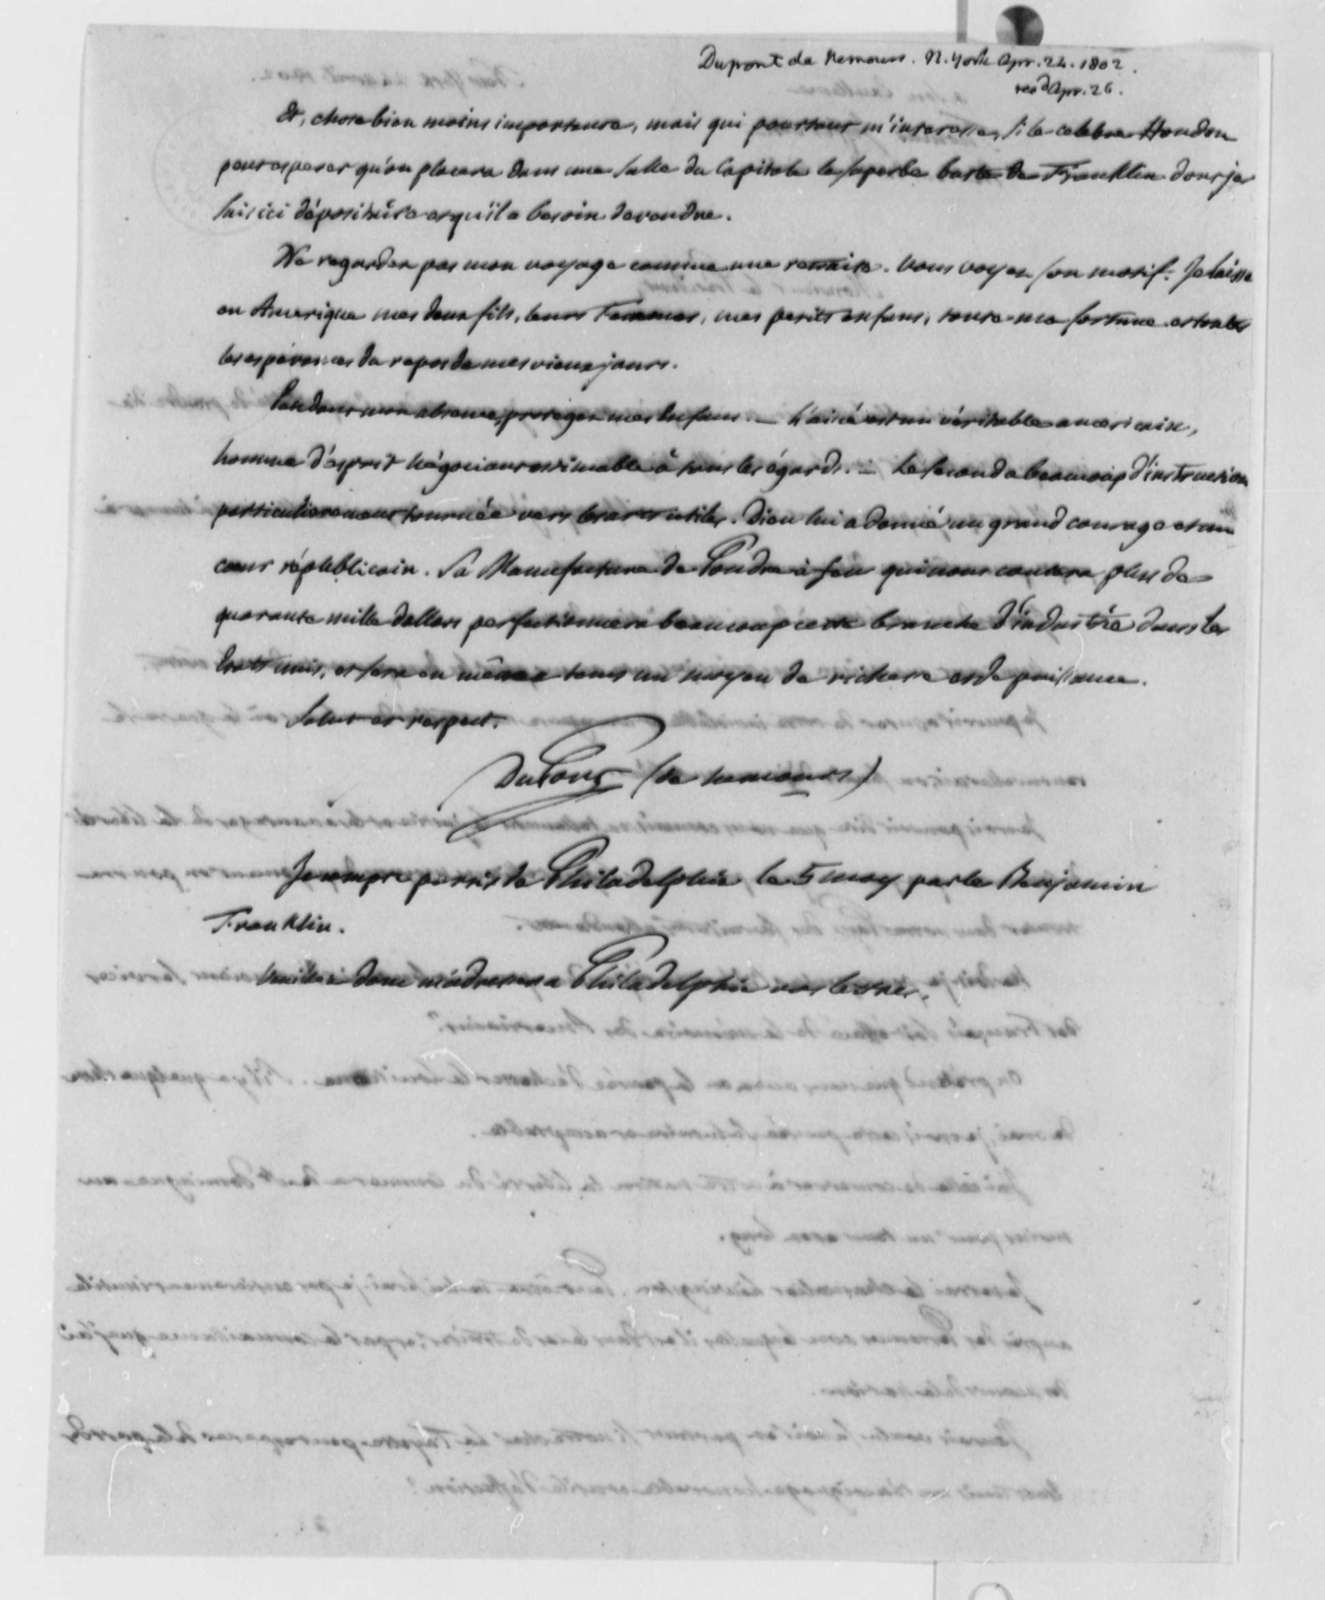 Pierre S. Dupont de Nemours to Thomas Jefferson, April 24, 1802, in French